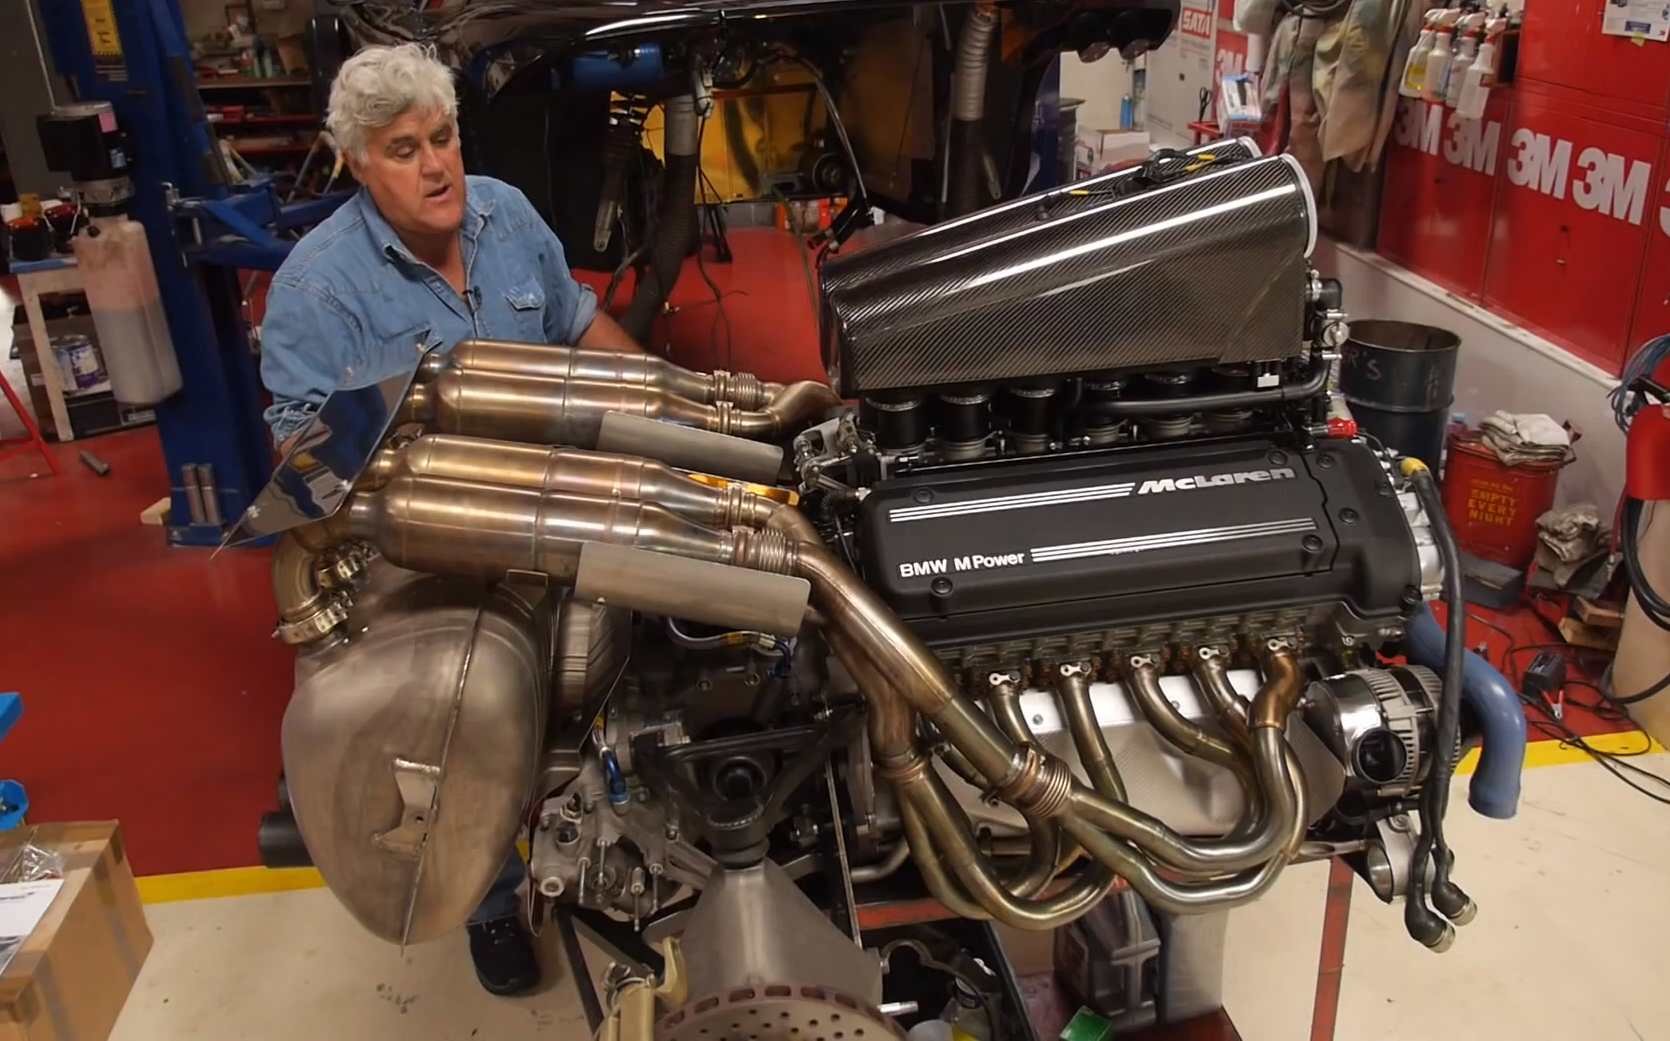 Bmw 39 s s70 2 engine showcased in jay leno 39 s garage for Bmw nasa garage juillet niort